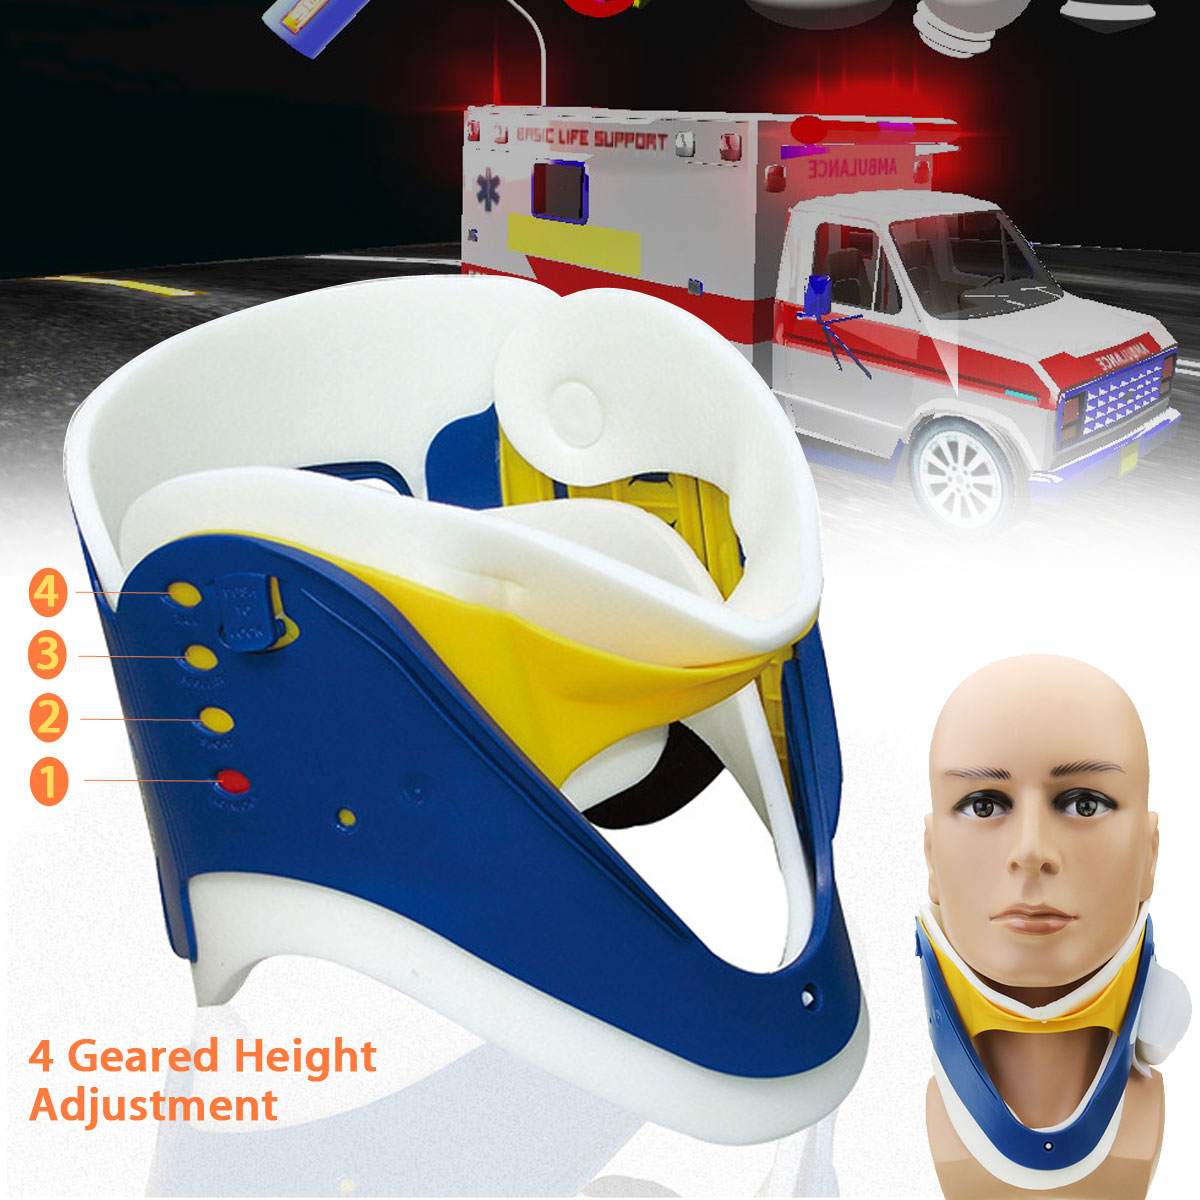 KIFIT Medical Neck Collar Breathable Cervical Neck Traction Support Brace Adjustable Strecher Therapy Tractor Orthosis Braces(China)